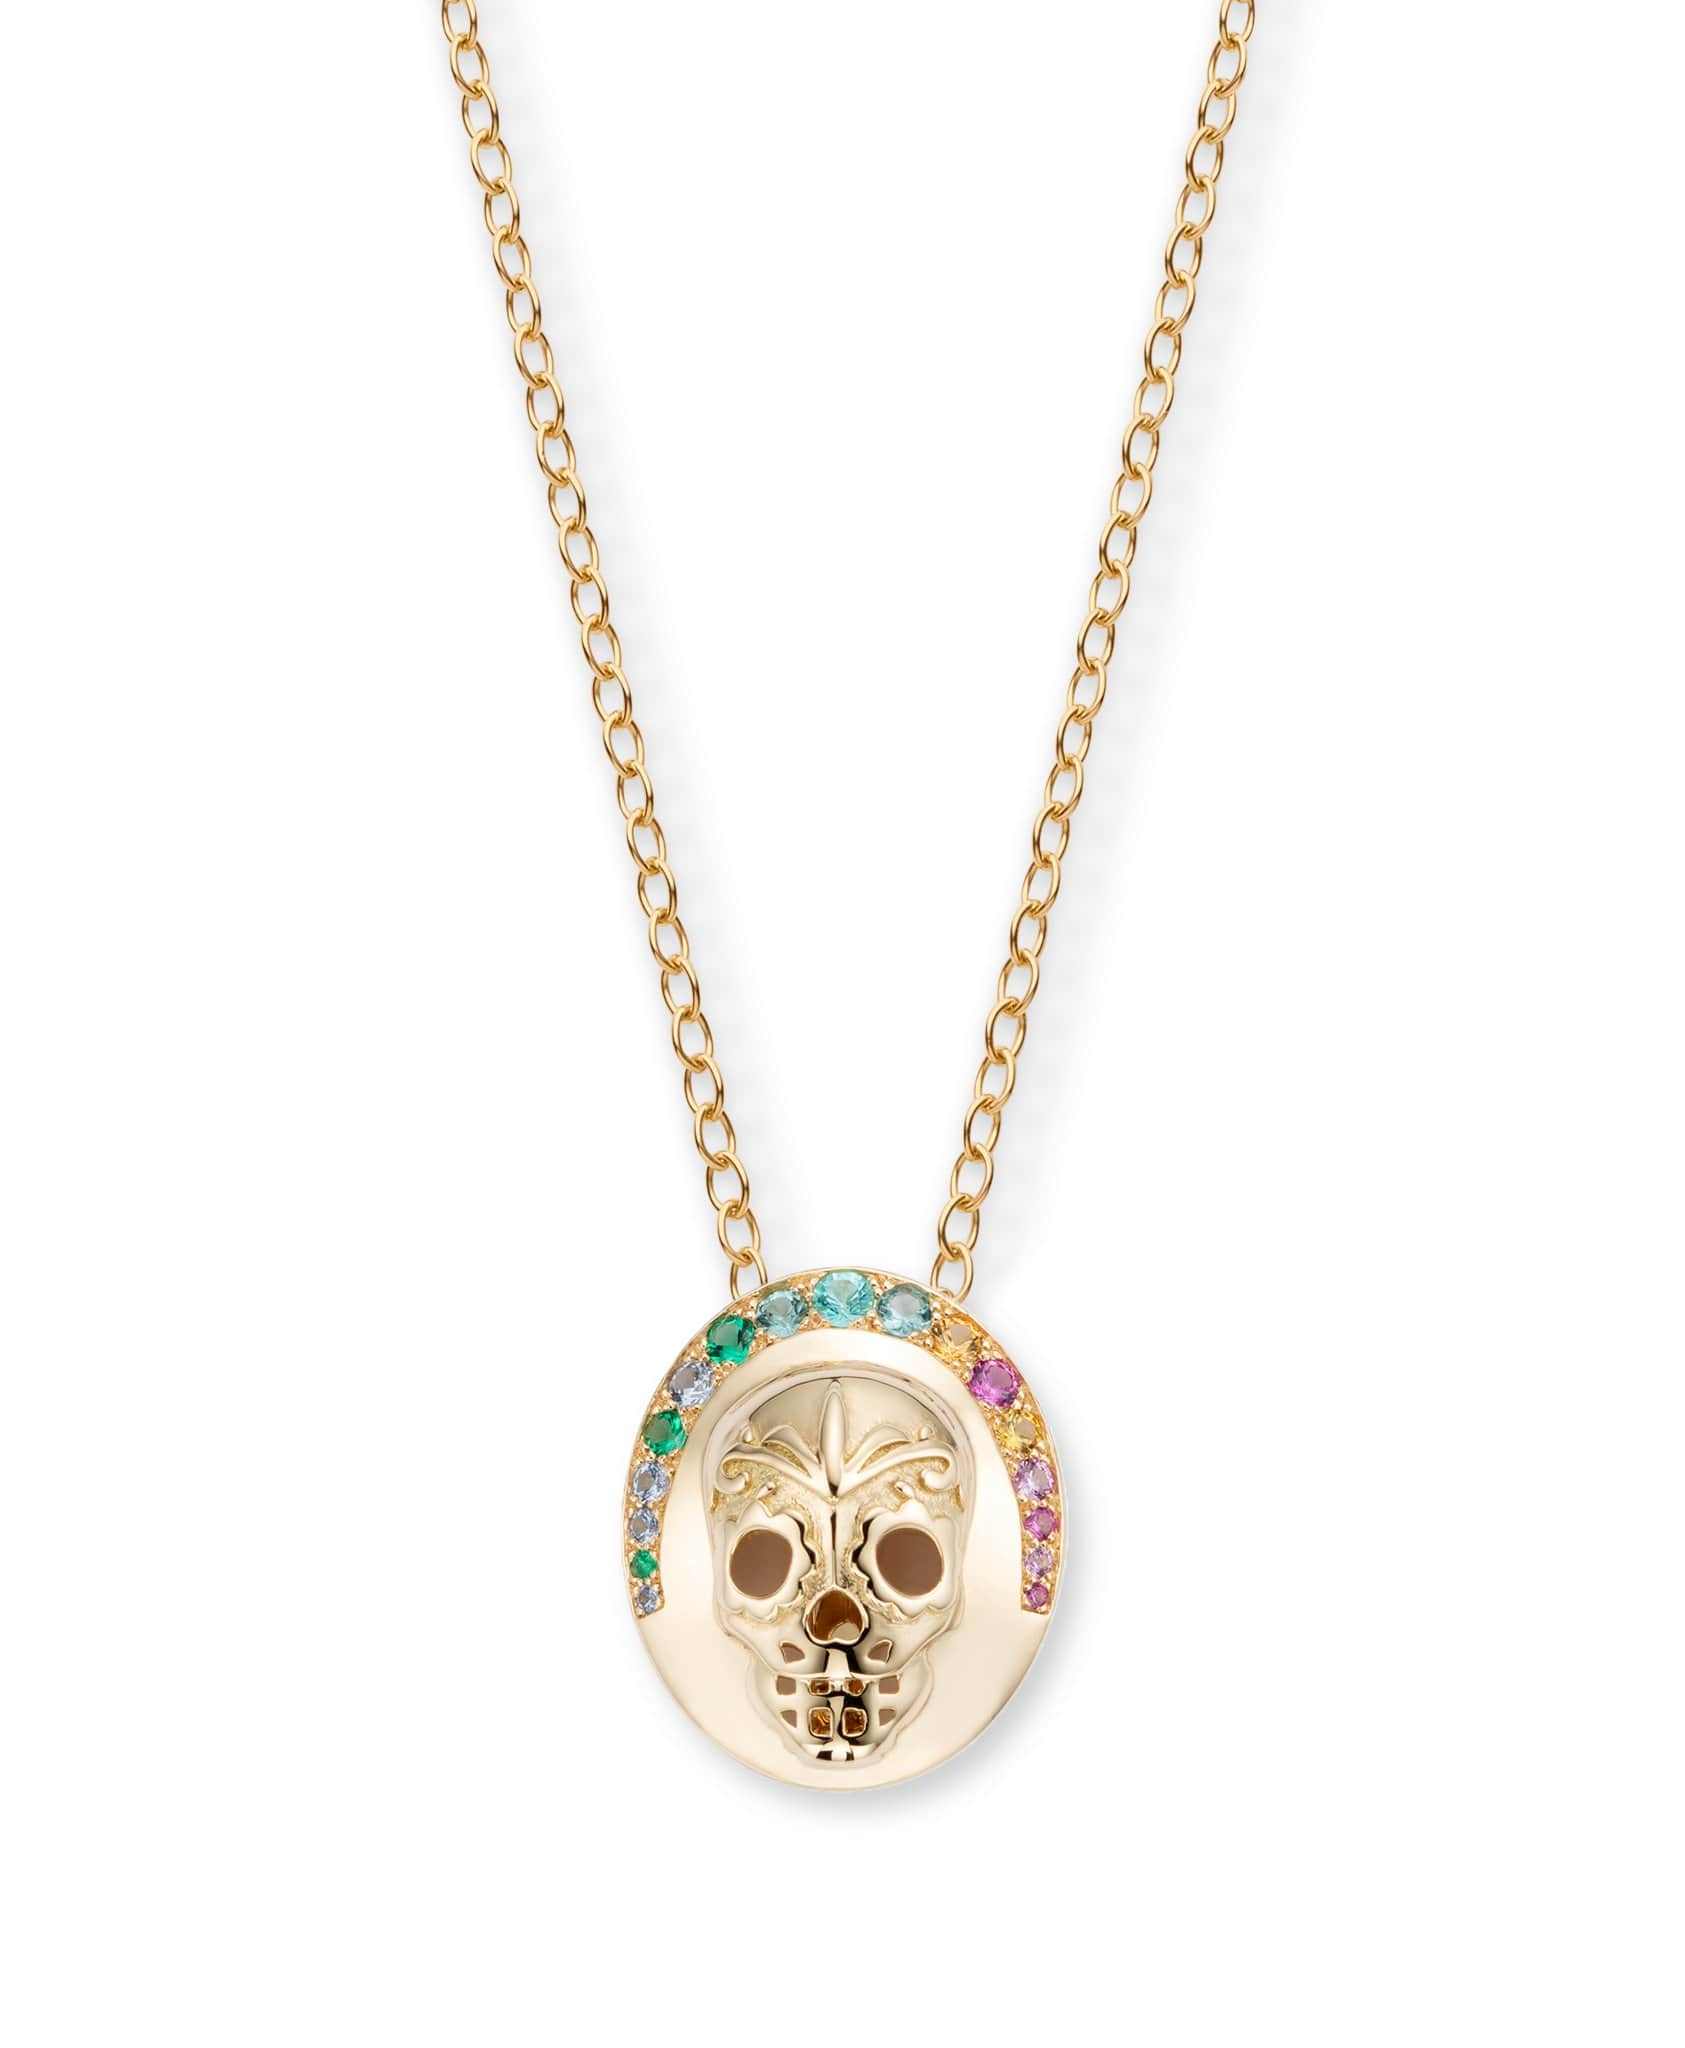 Skull Medallion: Discover Luxury Fine Jewelry | Nouvel Heritage